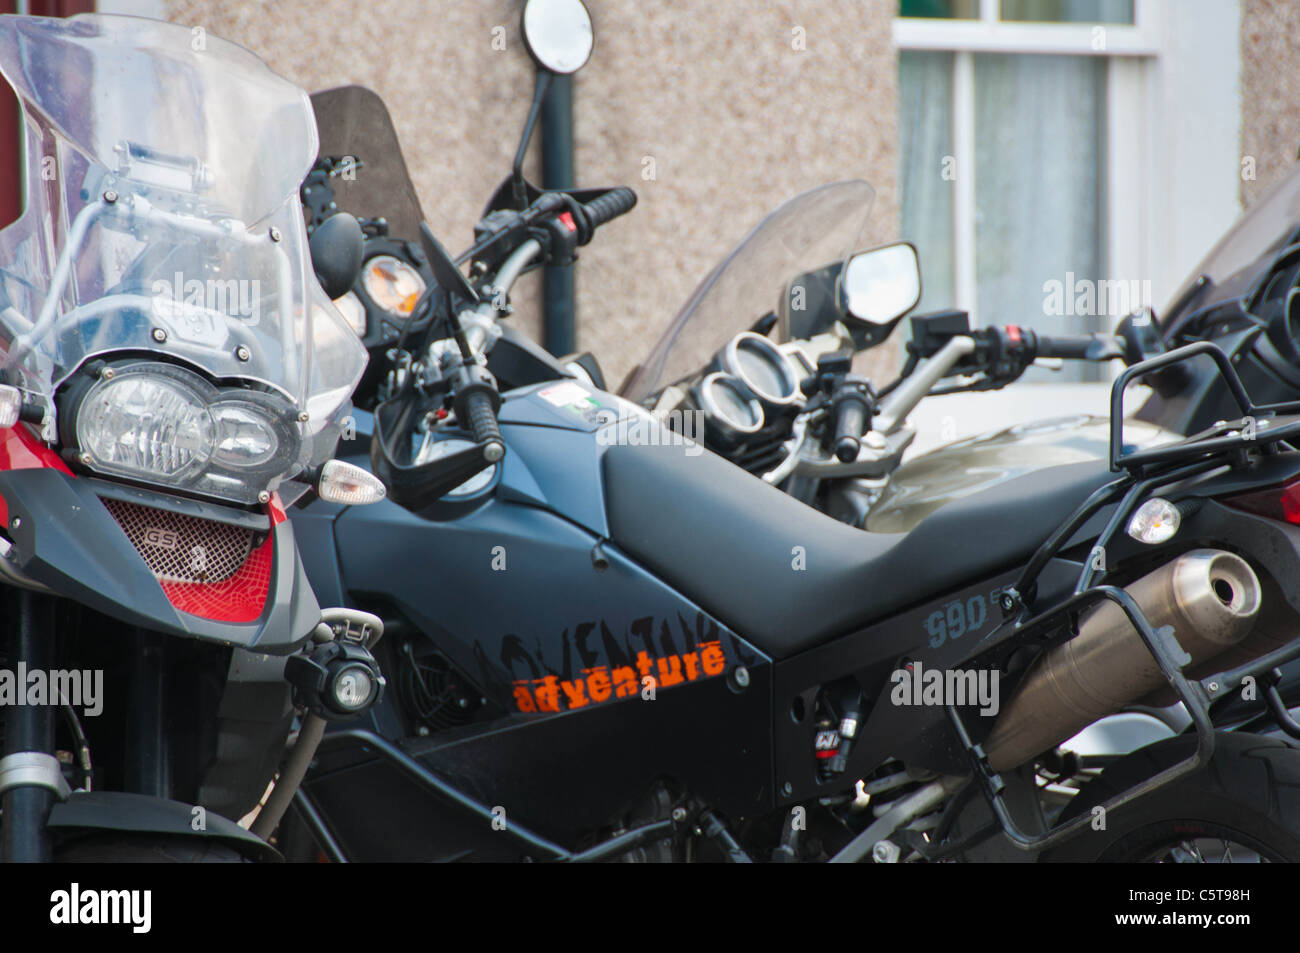 Adventure motorcycles, BMW GS, KTM 990 - Stock Image